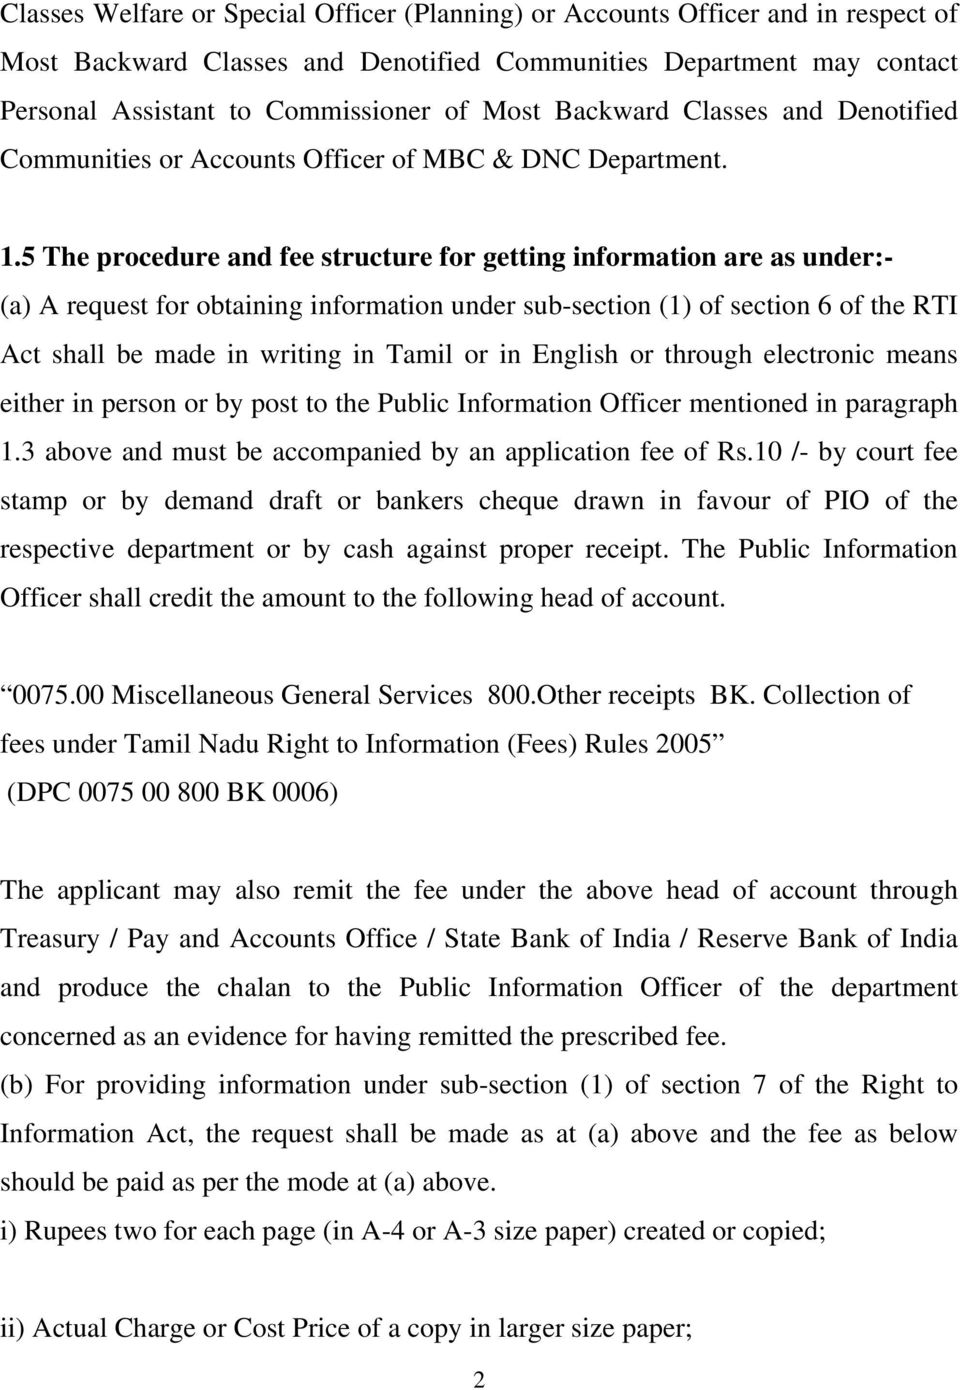 5 The procedure and fee structure for getting information are as under:- (a) A request for obtaining information under sub-section (1) of section 6 of the RTI Act shall be made in writing in Tamil or